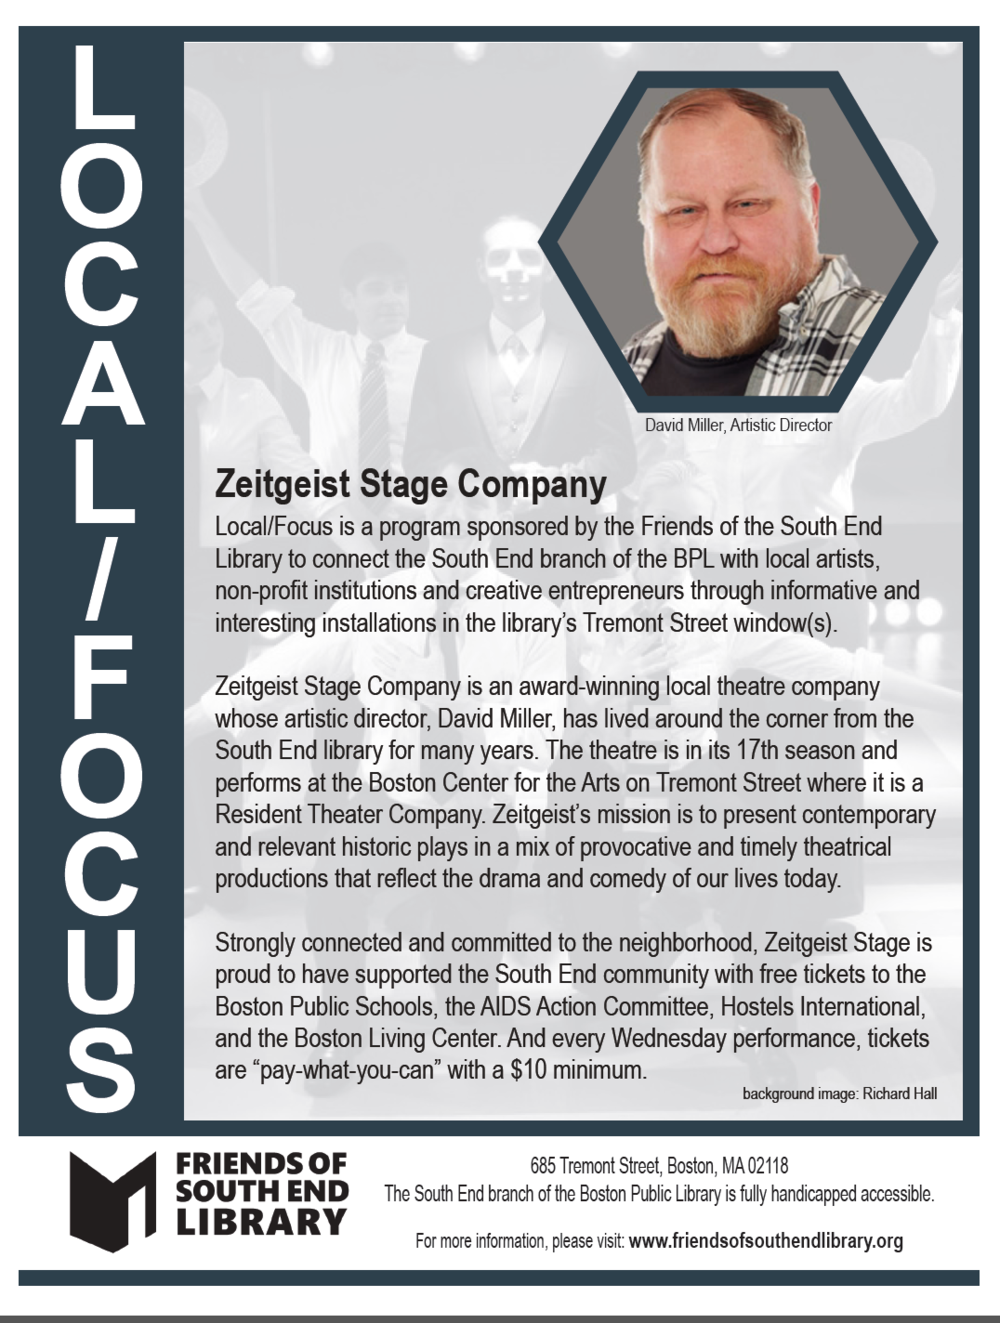 The January 2018 Local/Focus window by local theatre company,  Zeitgeist Stage